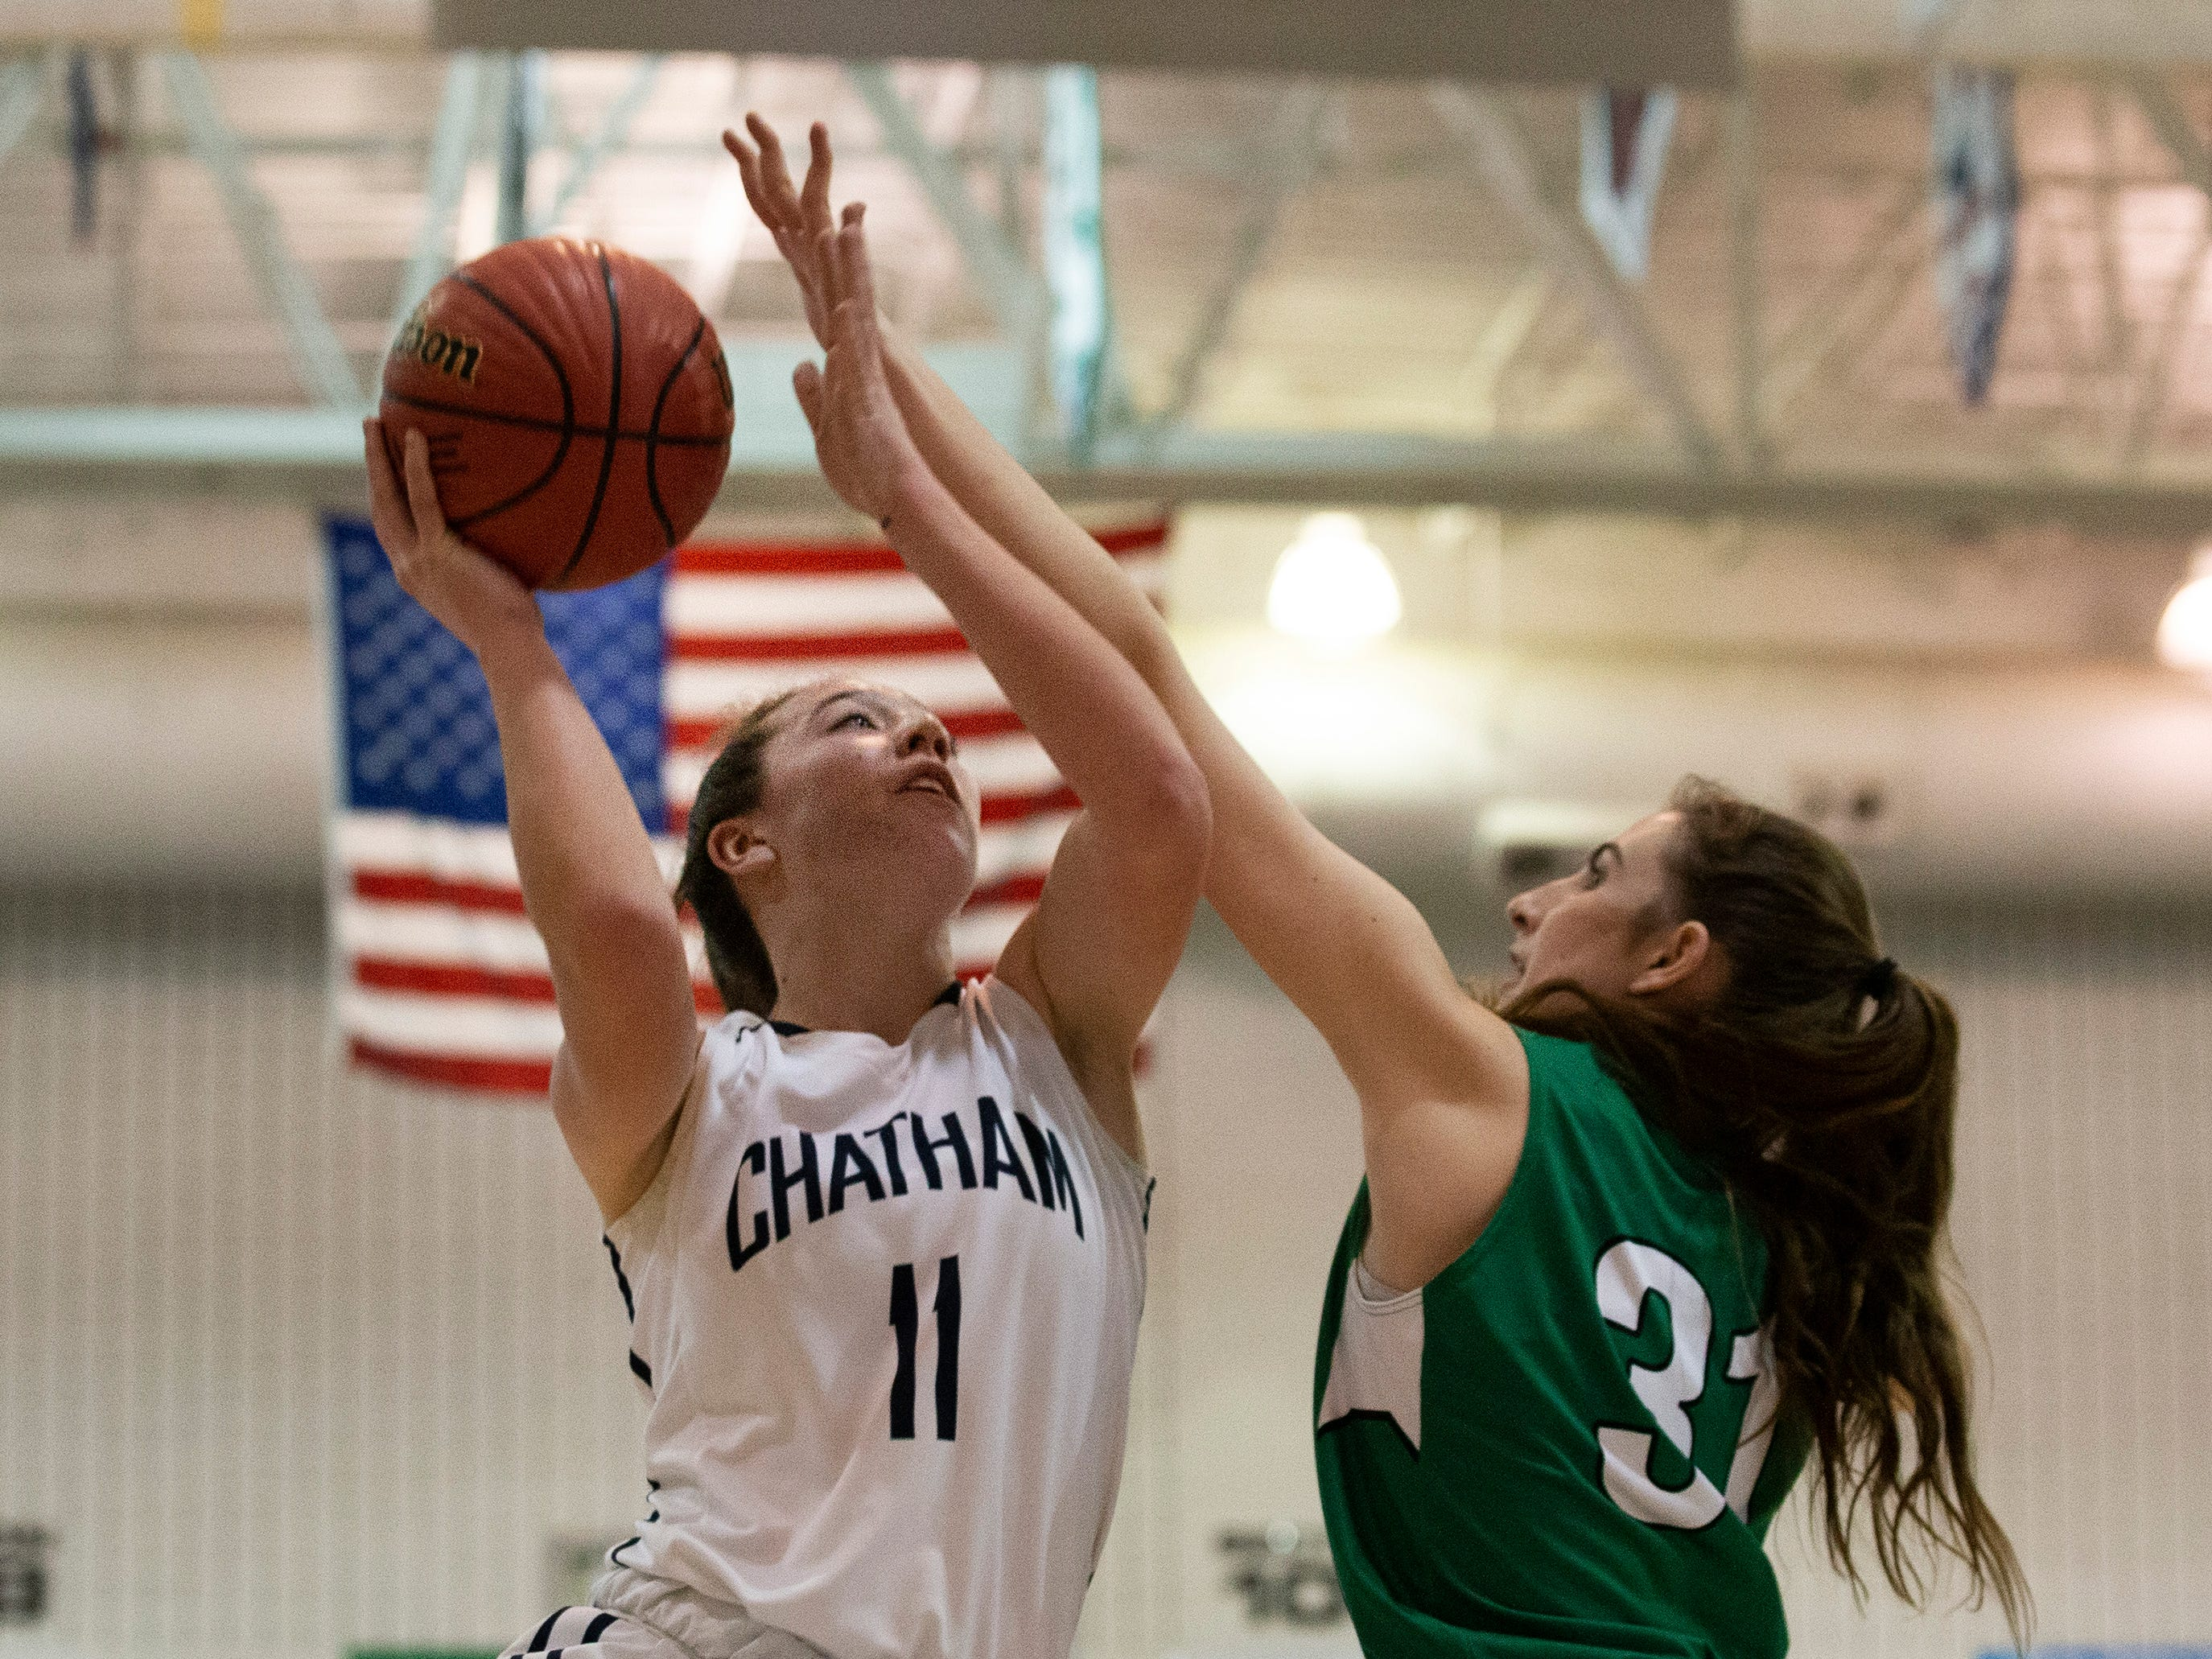 Shannon Donohoe, Chatham, goes up with shot against Kaitlyn Boggs, Mainland, during first half action. Chatham Girls Basketball vs Mainland in Girls Group III Final in Toms River on March 10, 2019.